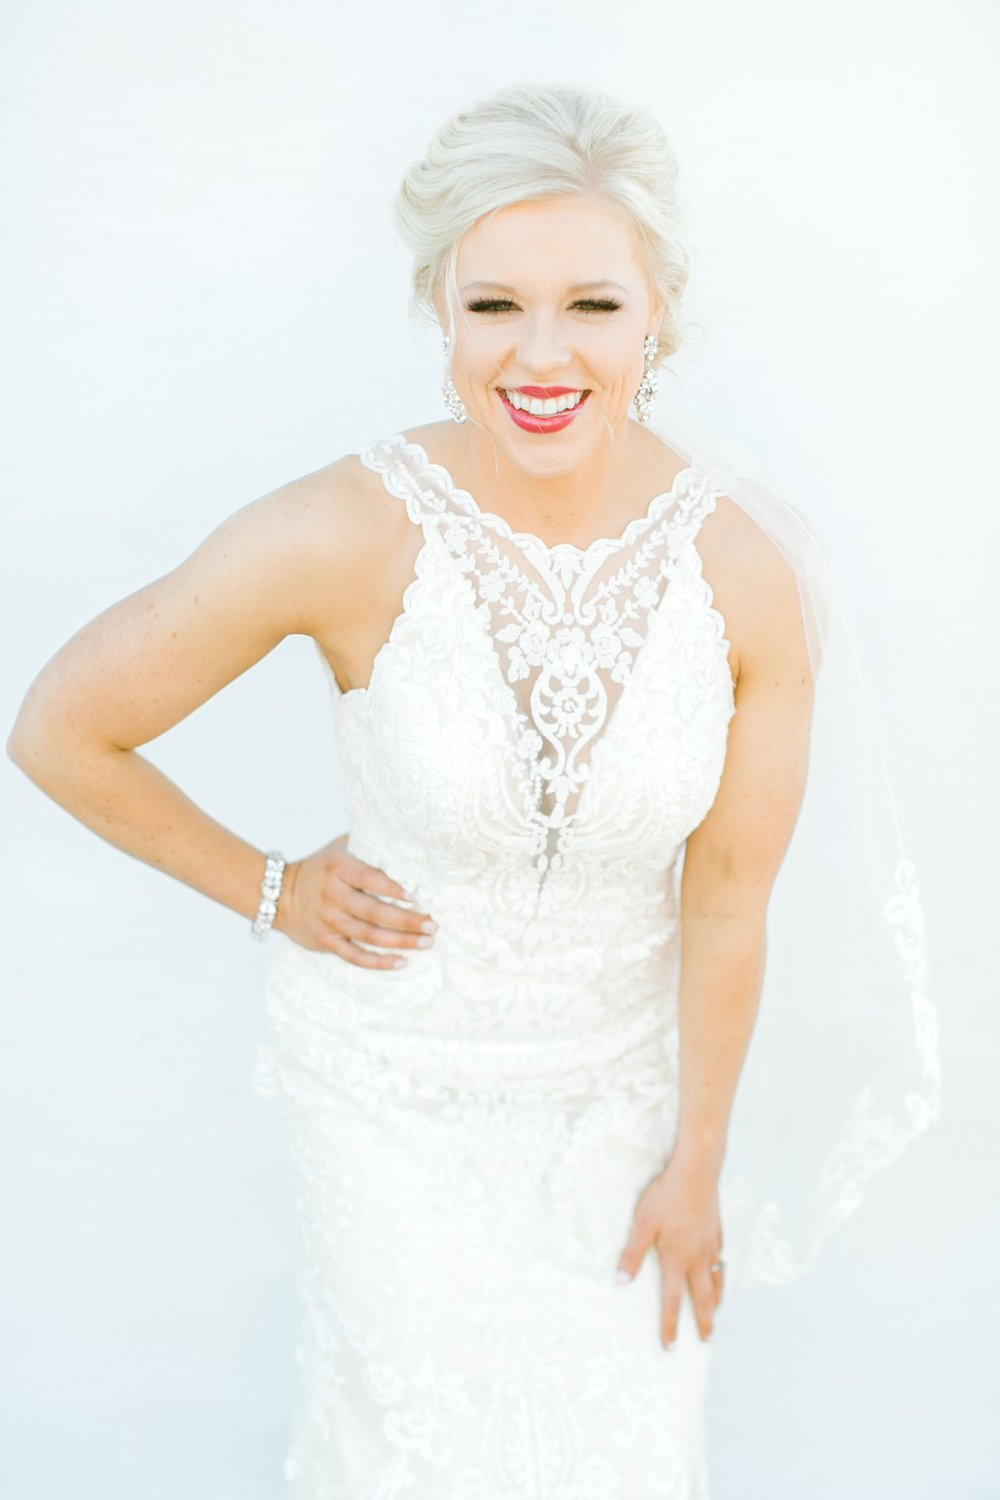 Jenna-evans-bridals-balmorhea-texas-fort-davis-wedding-photographer-lubbock-photographer__0051.jpg